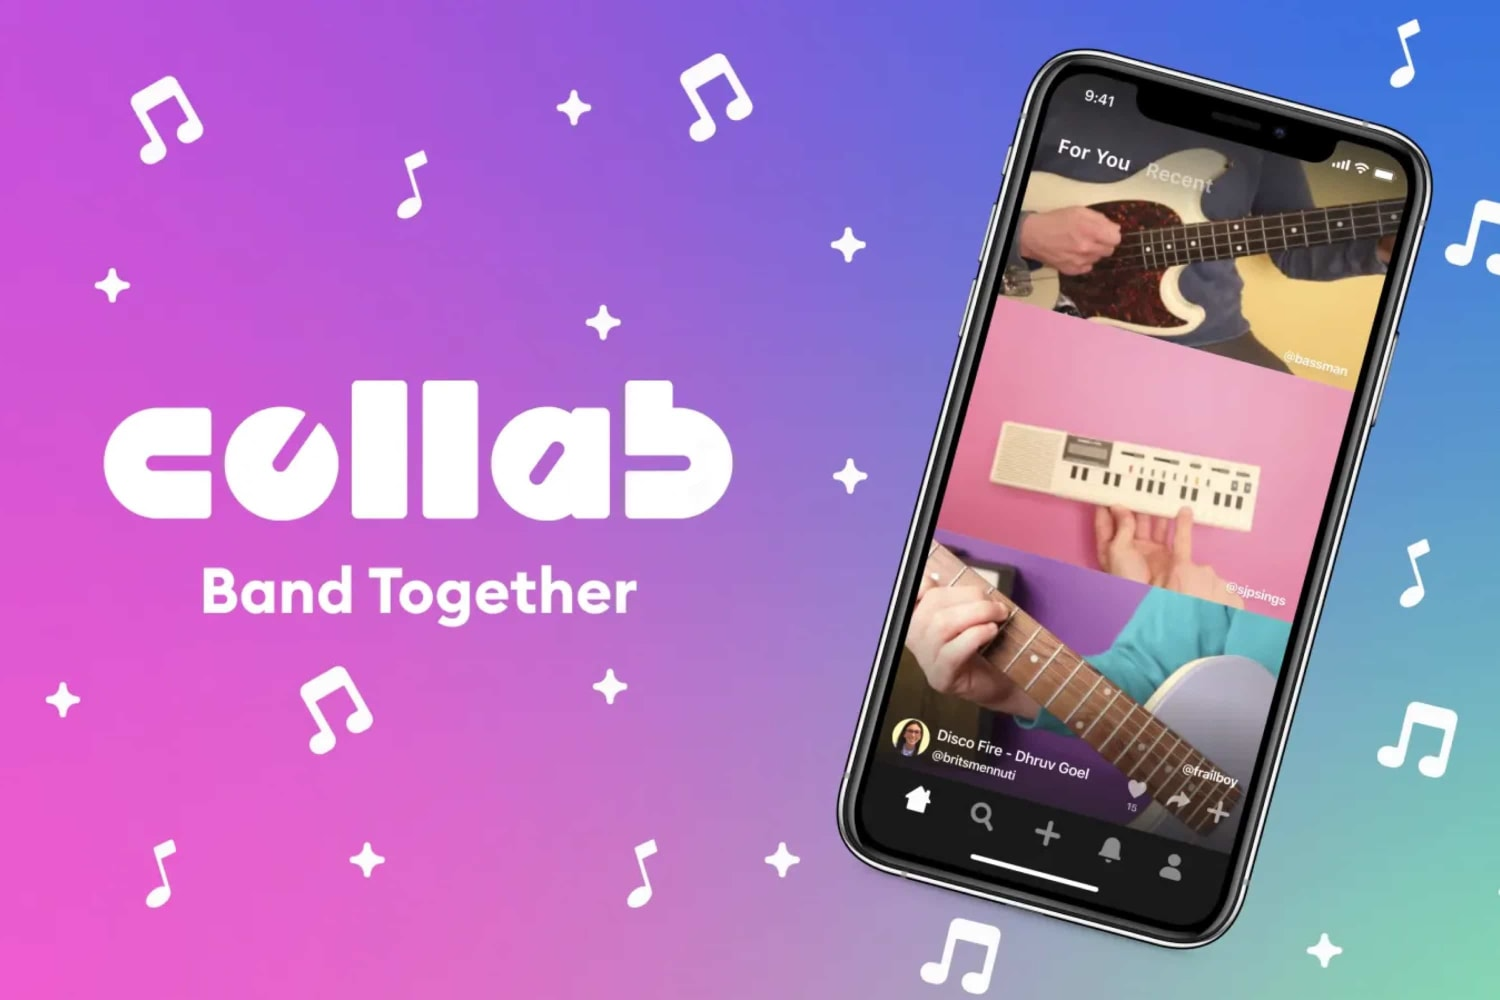 facebook-launches-short-form-video-app-collab-20201214-1